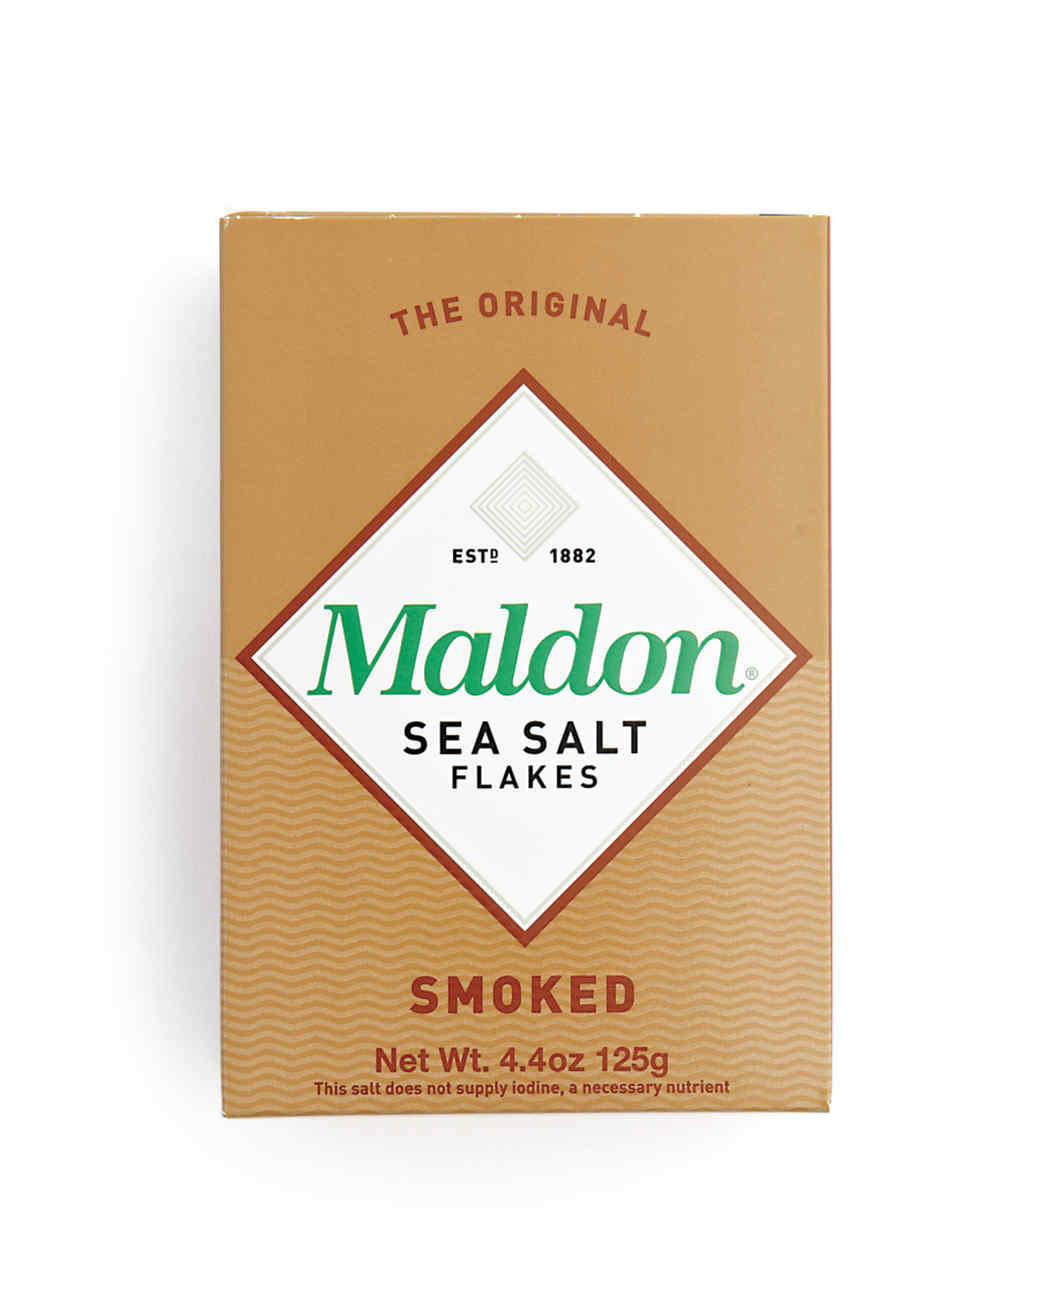 tastemaker-maldon-sea-salt-md109288.jpg